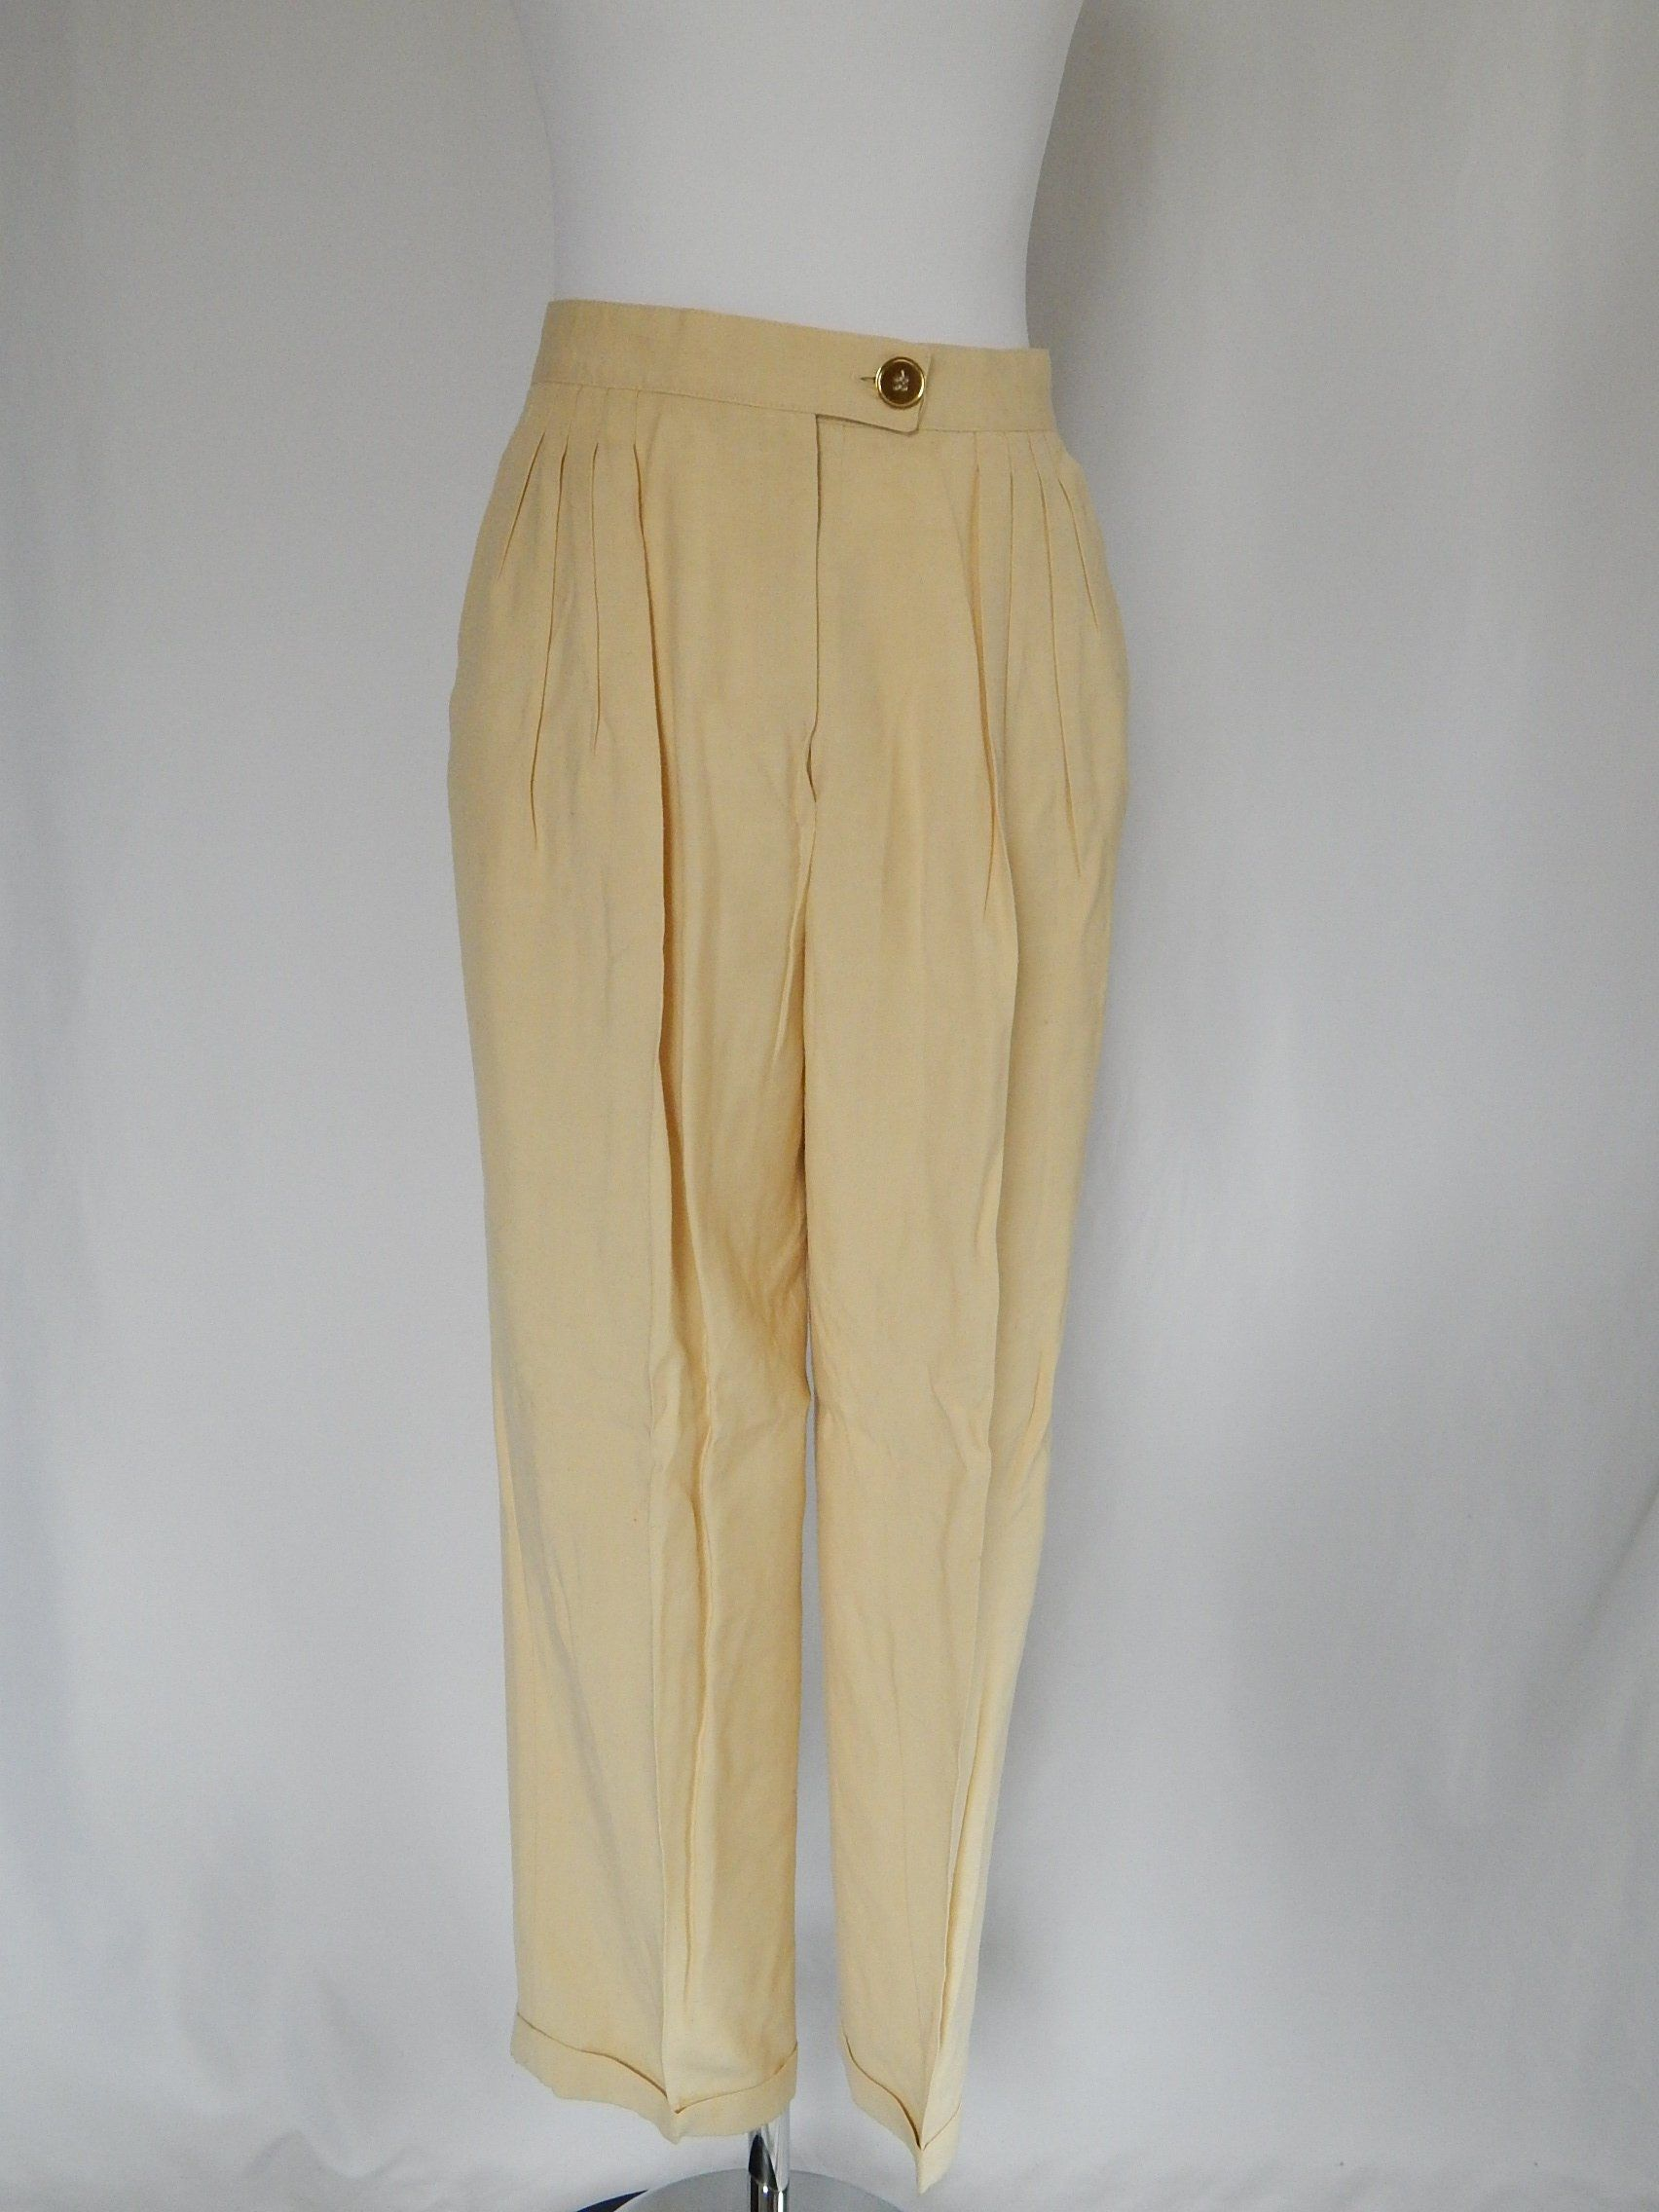 7624282cb682 Vintage Christian Dior Pants Trousers Small S Vintage 10 High Waisted Silk  Pleated Pale Butter Yellow